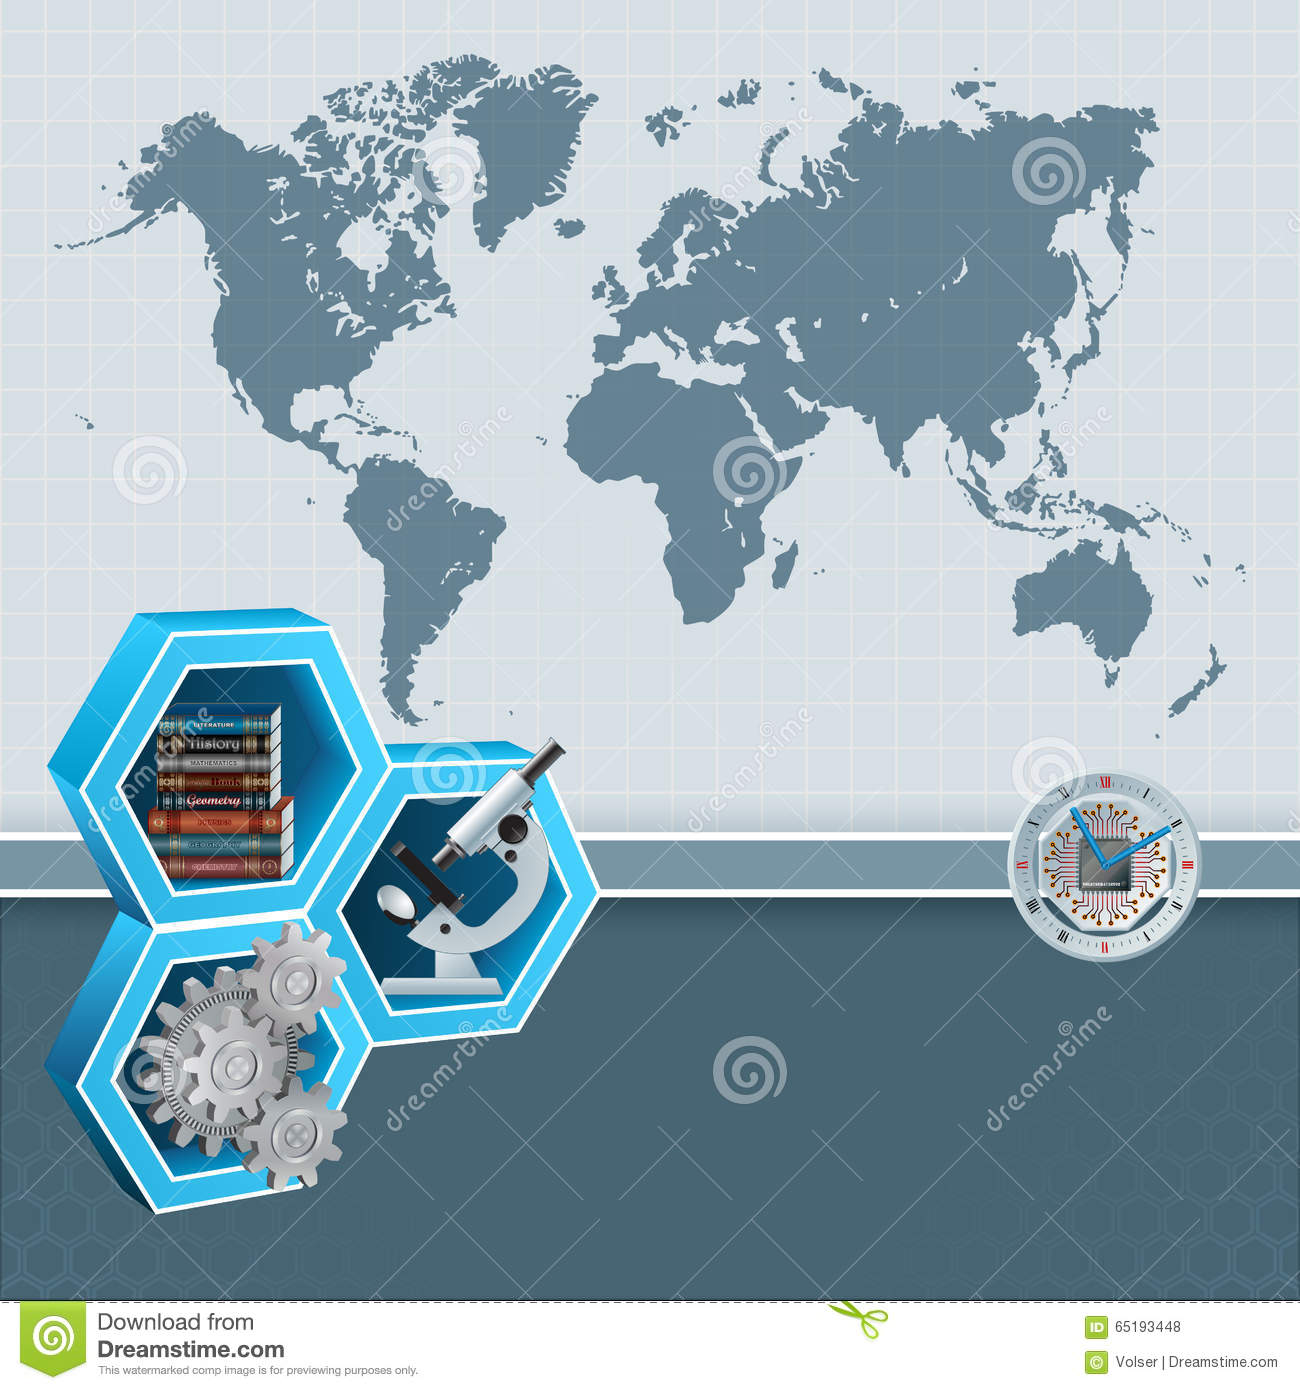 Study World Map.Abstract Design Background With World Map And Knowledge Translation